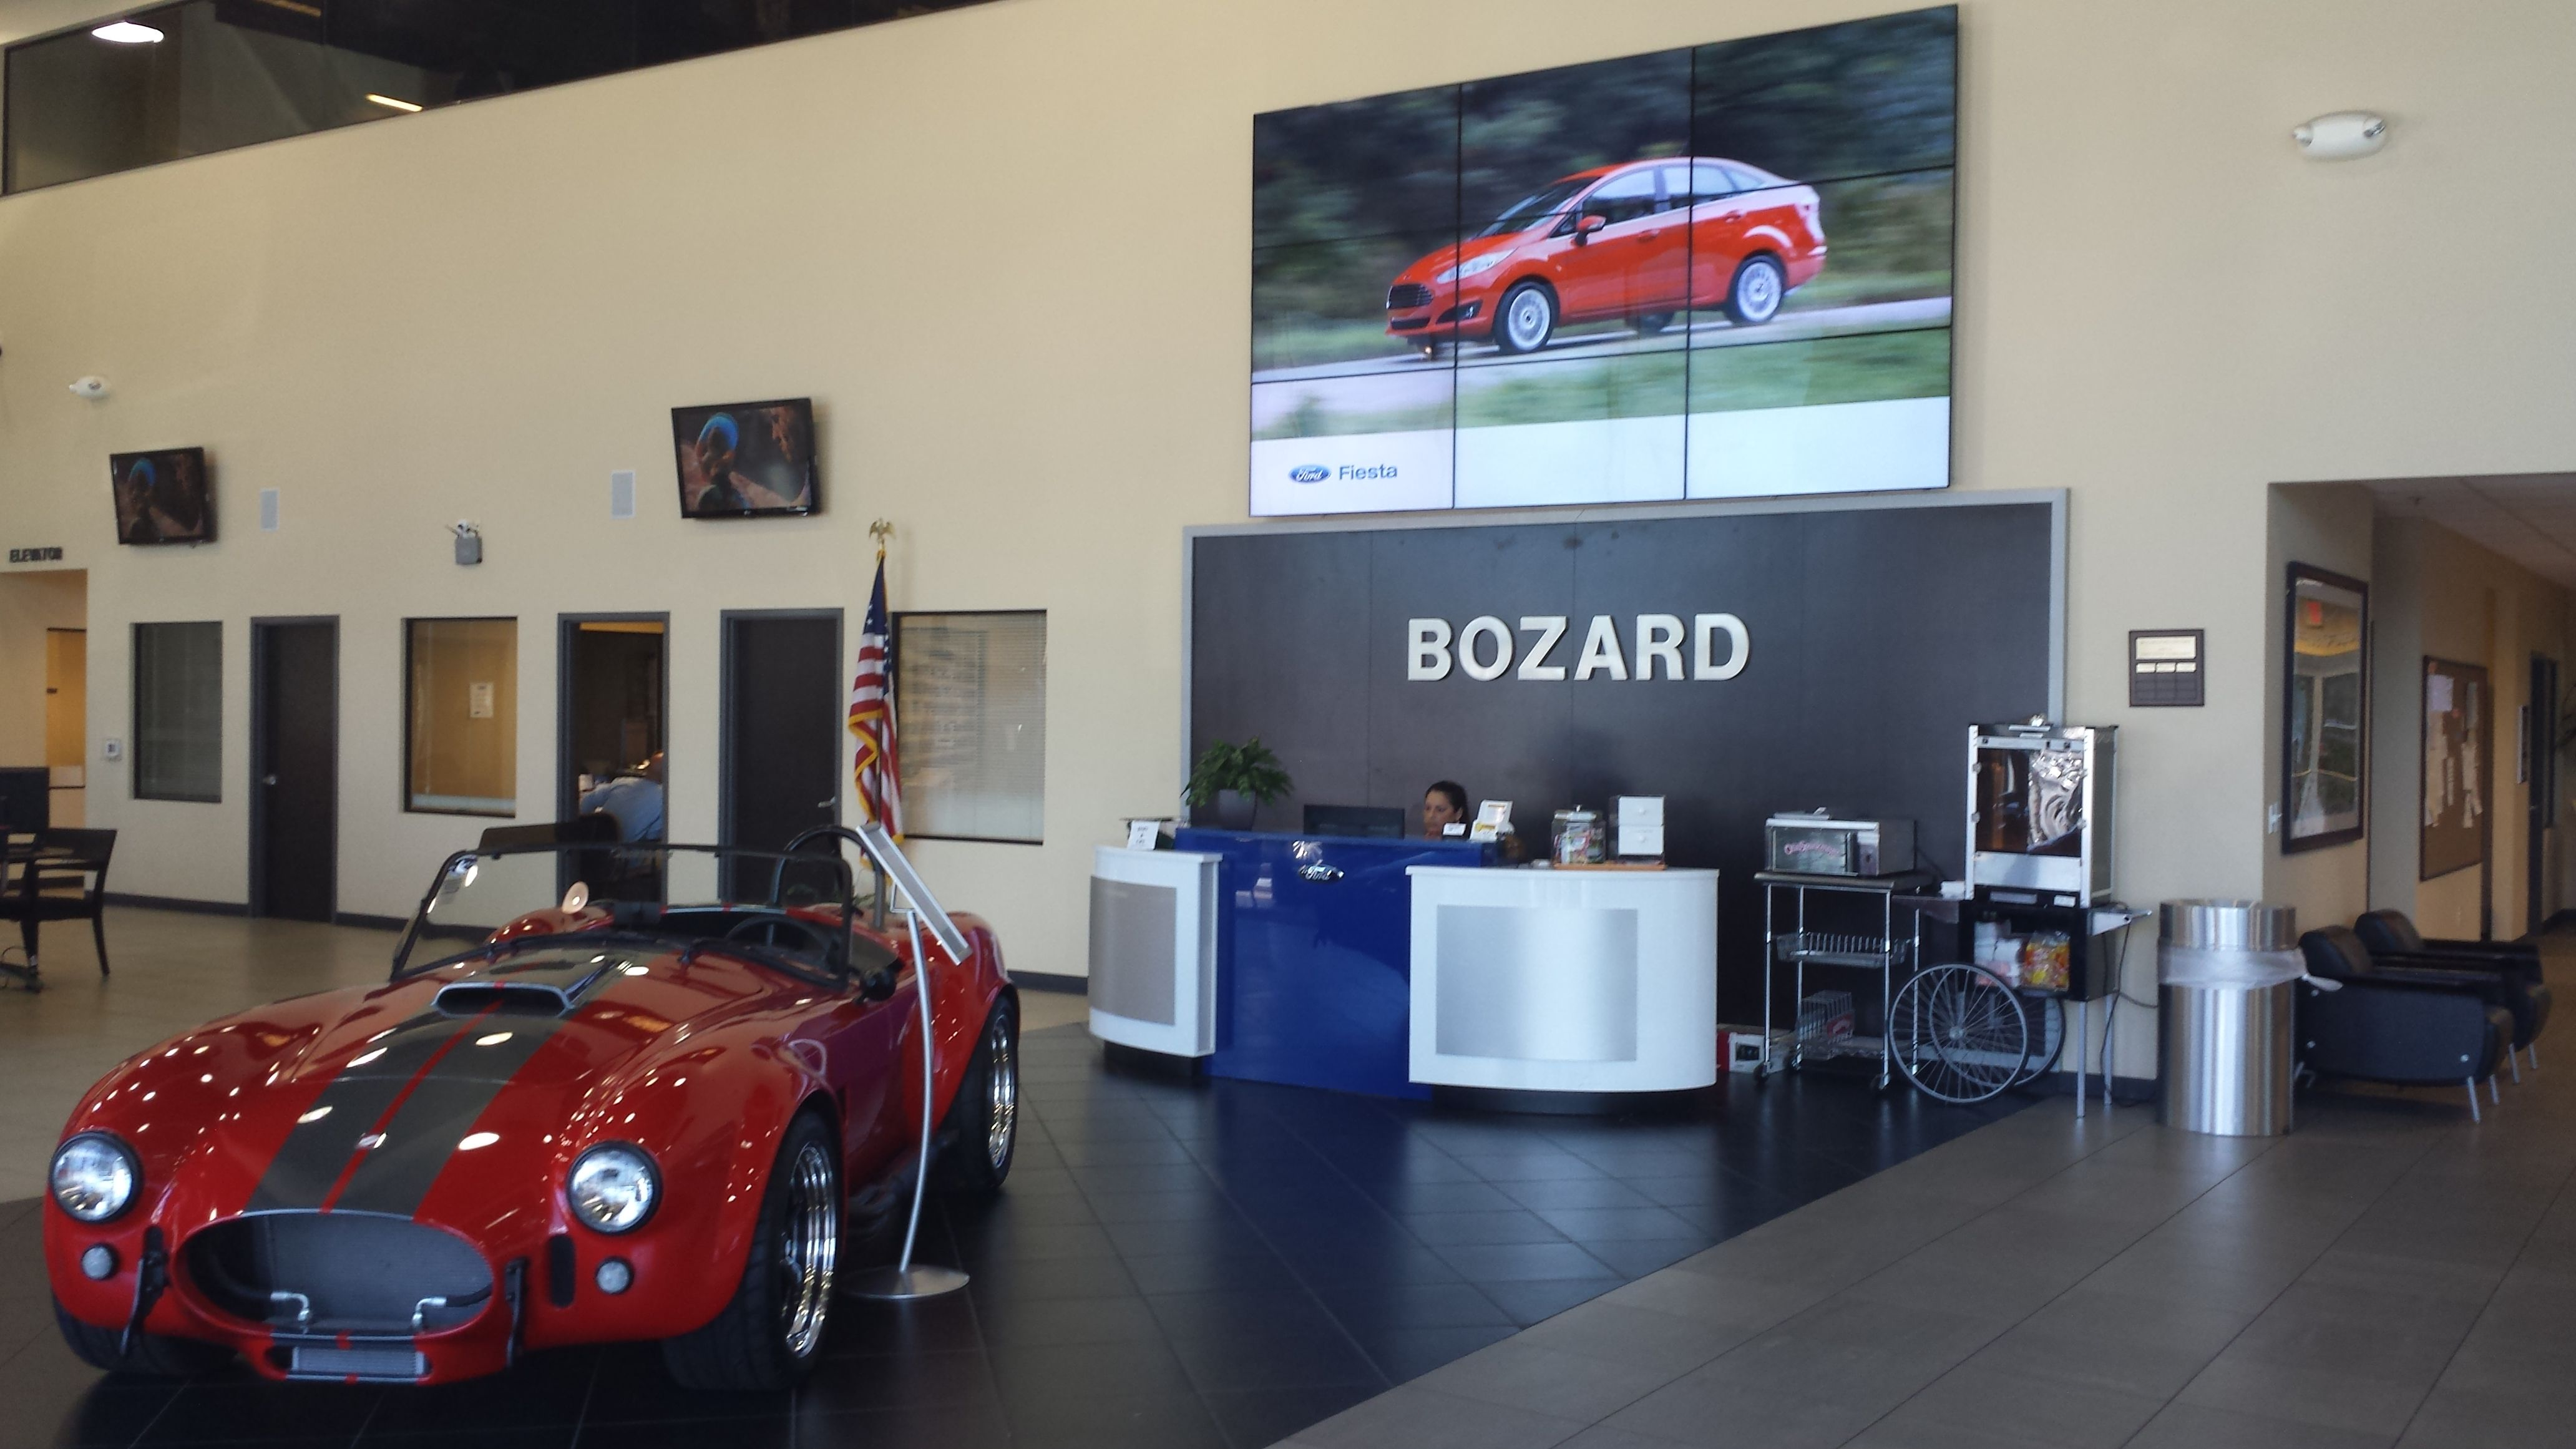 pin by lgm sports enclosed auto transport on your pinterest likes pinterest digital signage. Black Bedroom Furniture Sets. Home Design Ideas